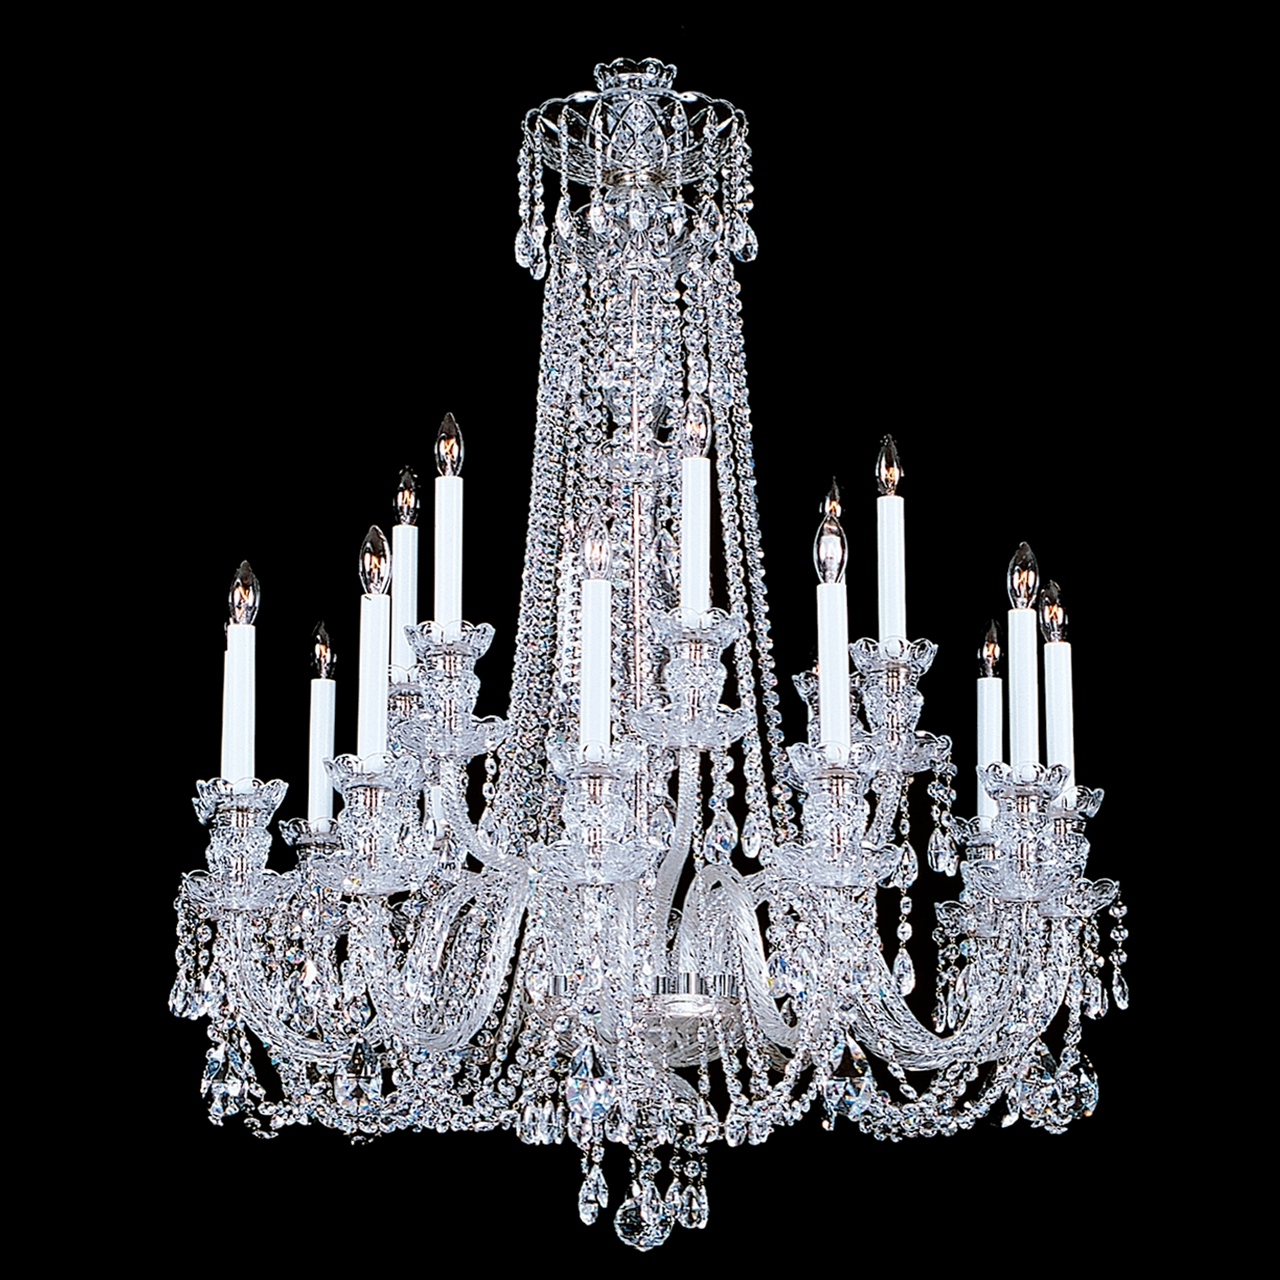 Living Room High Quality Crystal Chandeliers For Home Lighting Throughout Florian Crystal Chandeliers (Image 17 of 25)